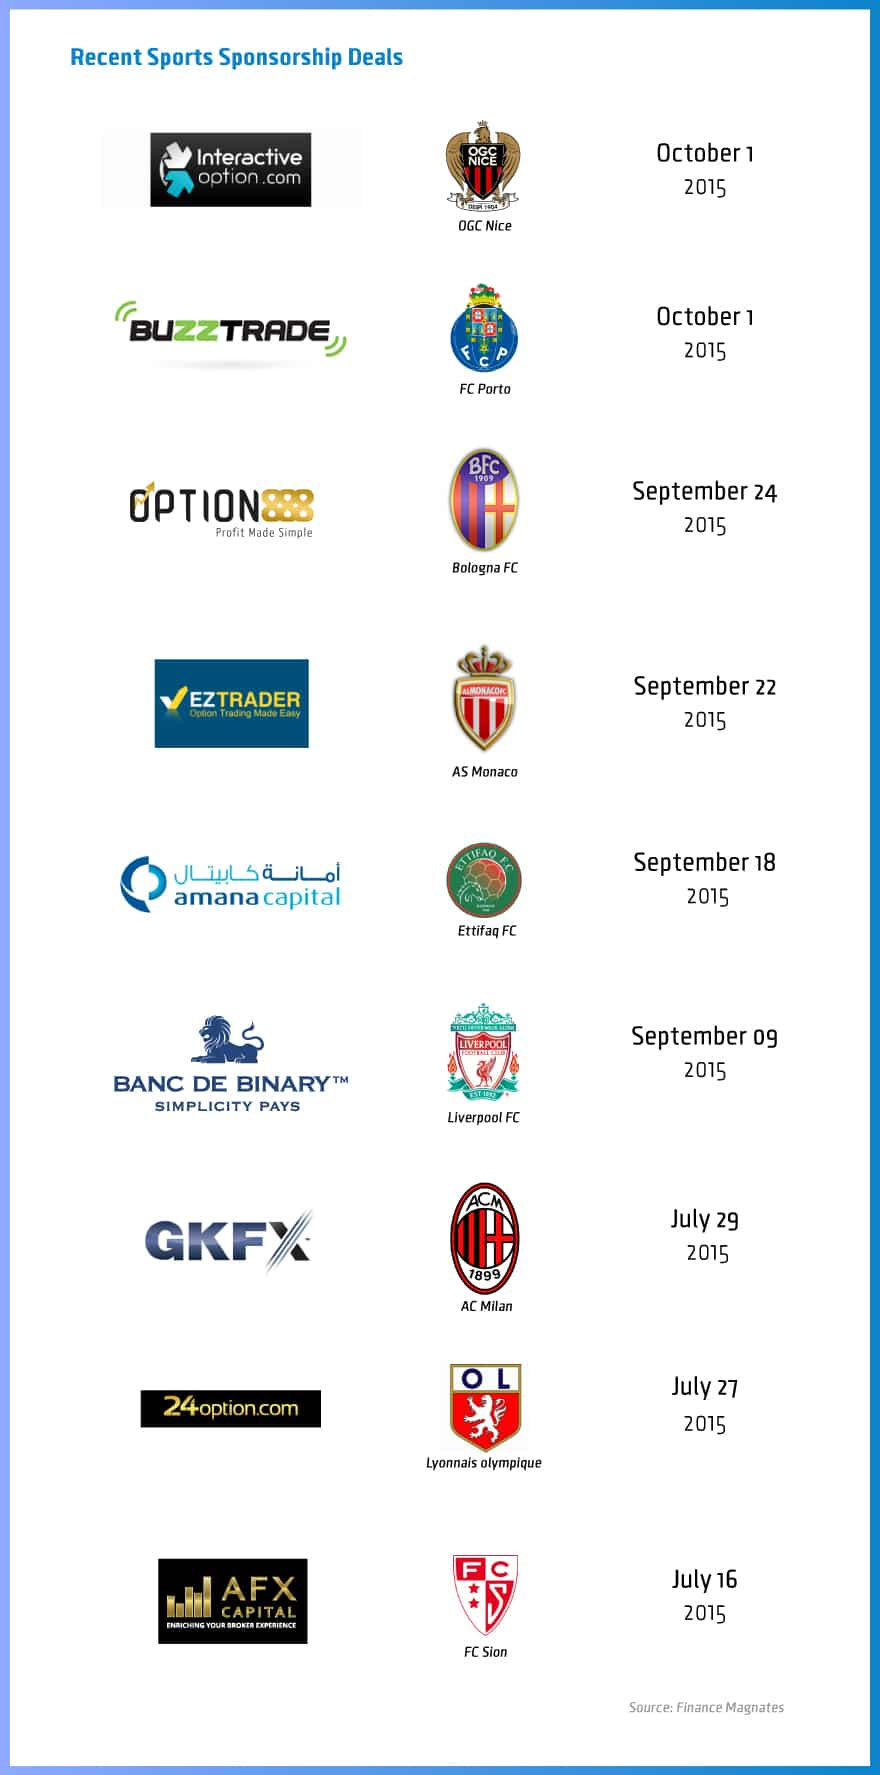 Recent-Sports-Sponsorship-Deals (3)